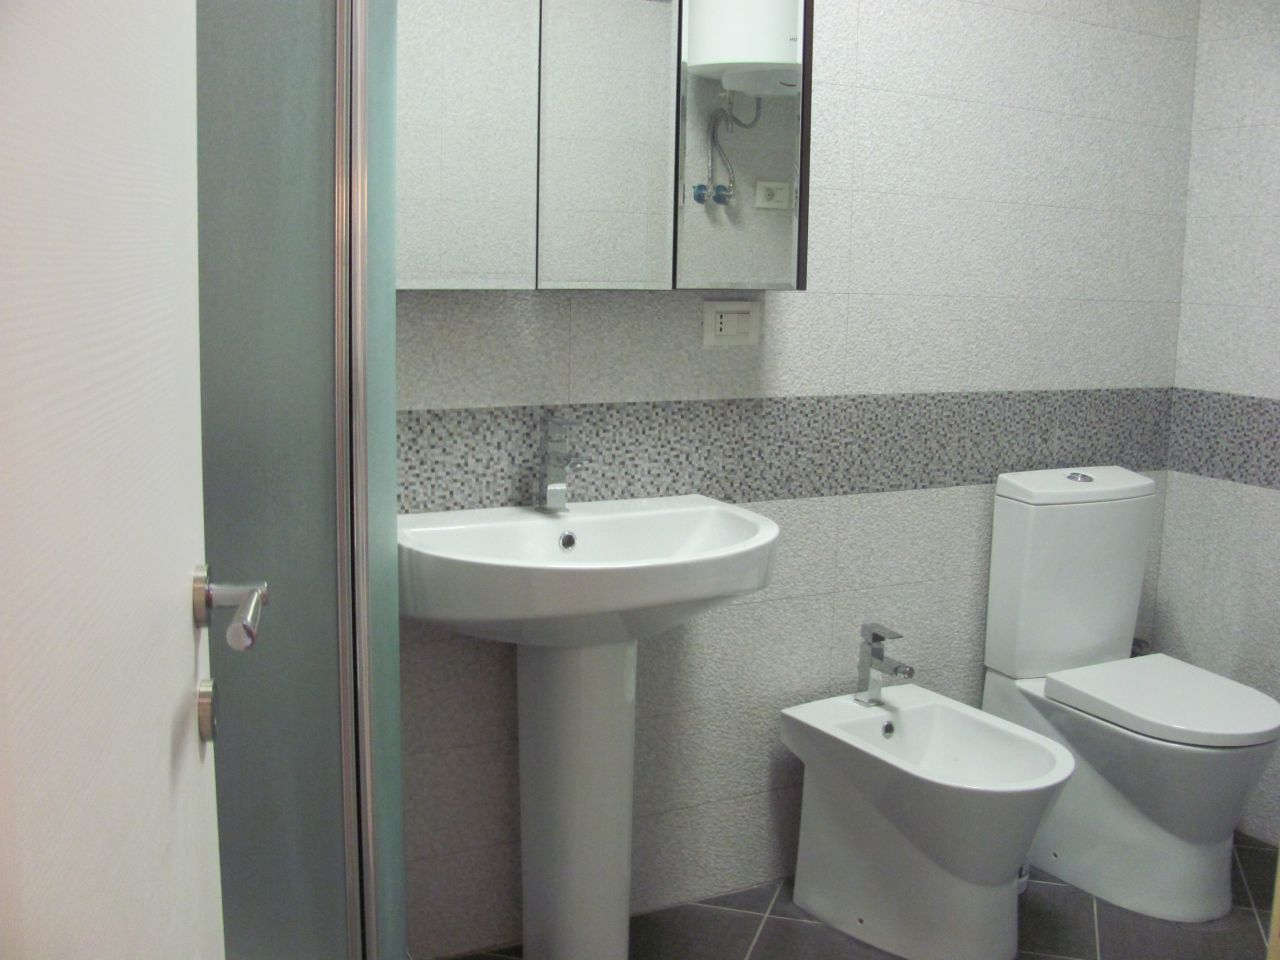 Apartments for Rent in Tirana. Near Park and Lake in Tirana